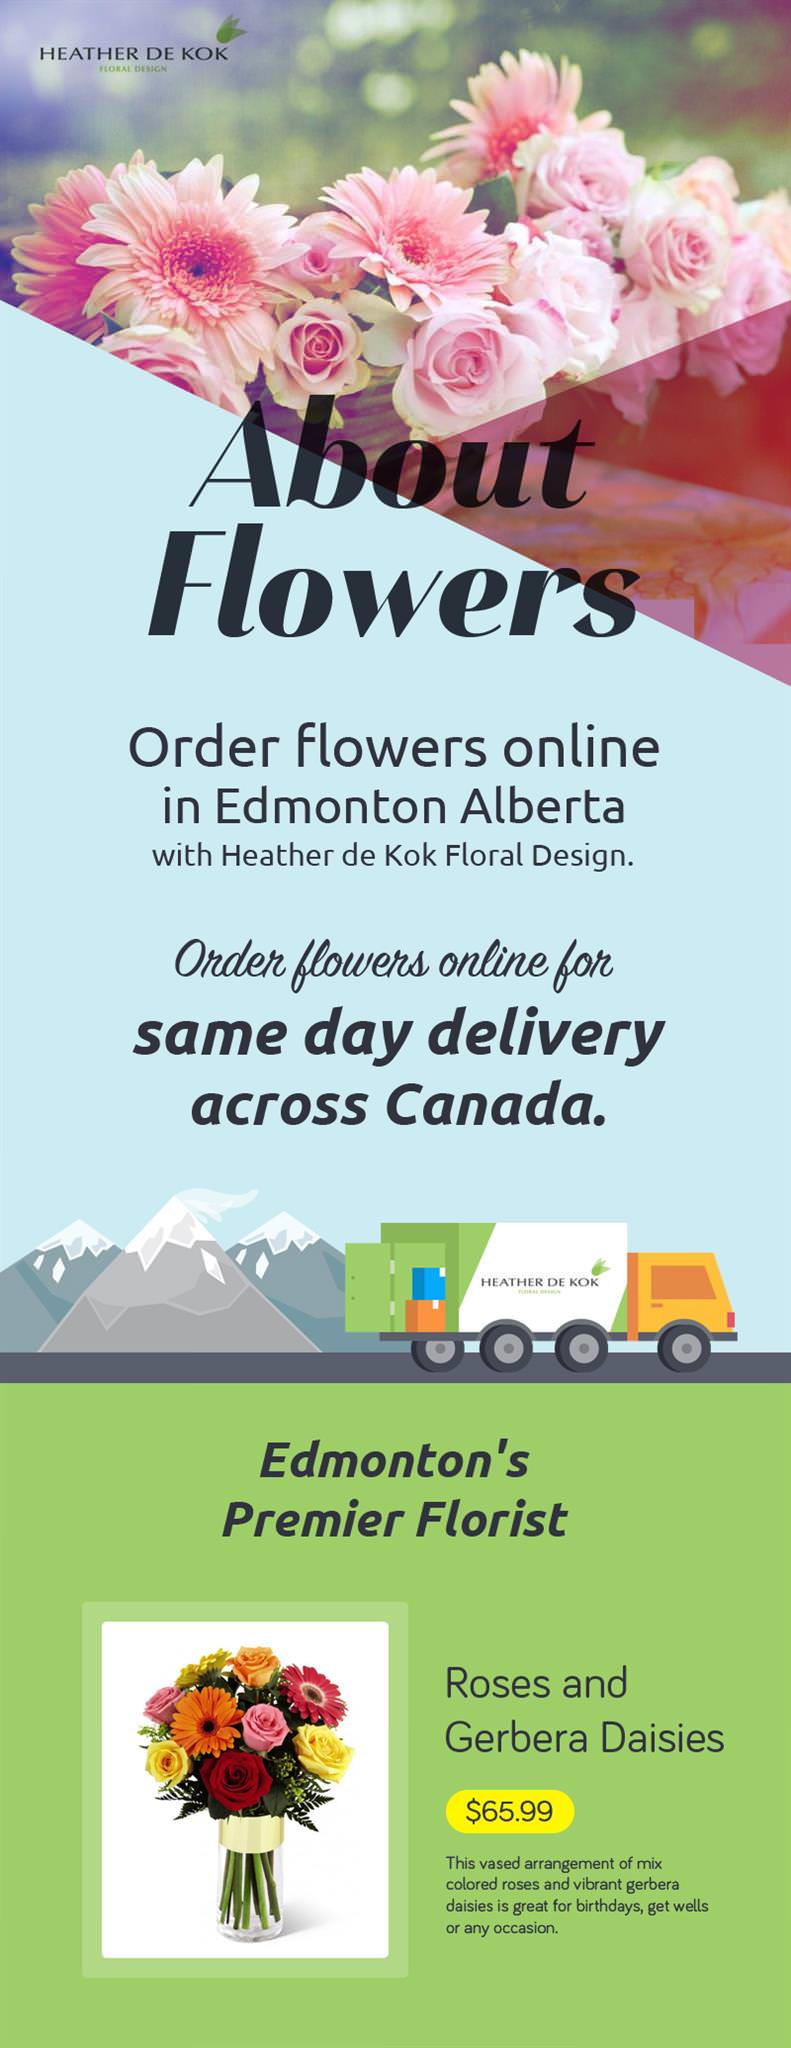 Order Fresh and Beautiful Flowers for Any Occasion from Canada Floral Delivery